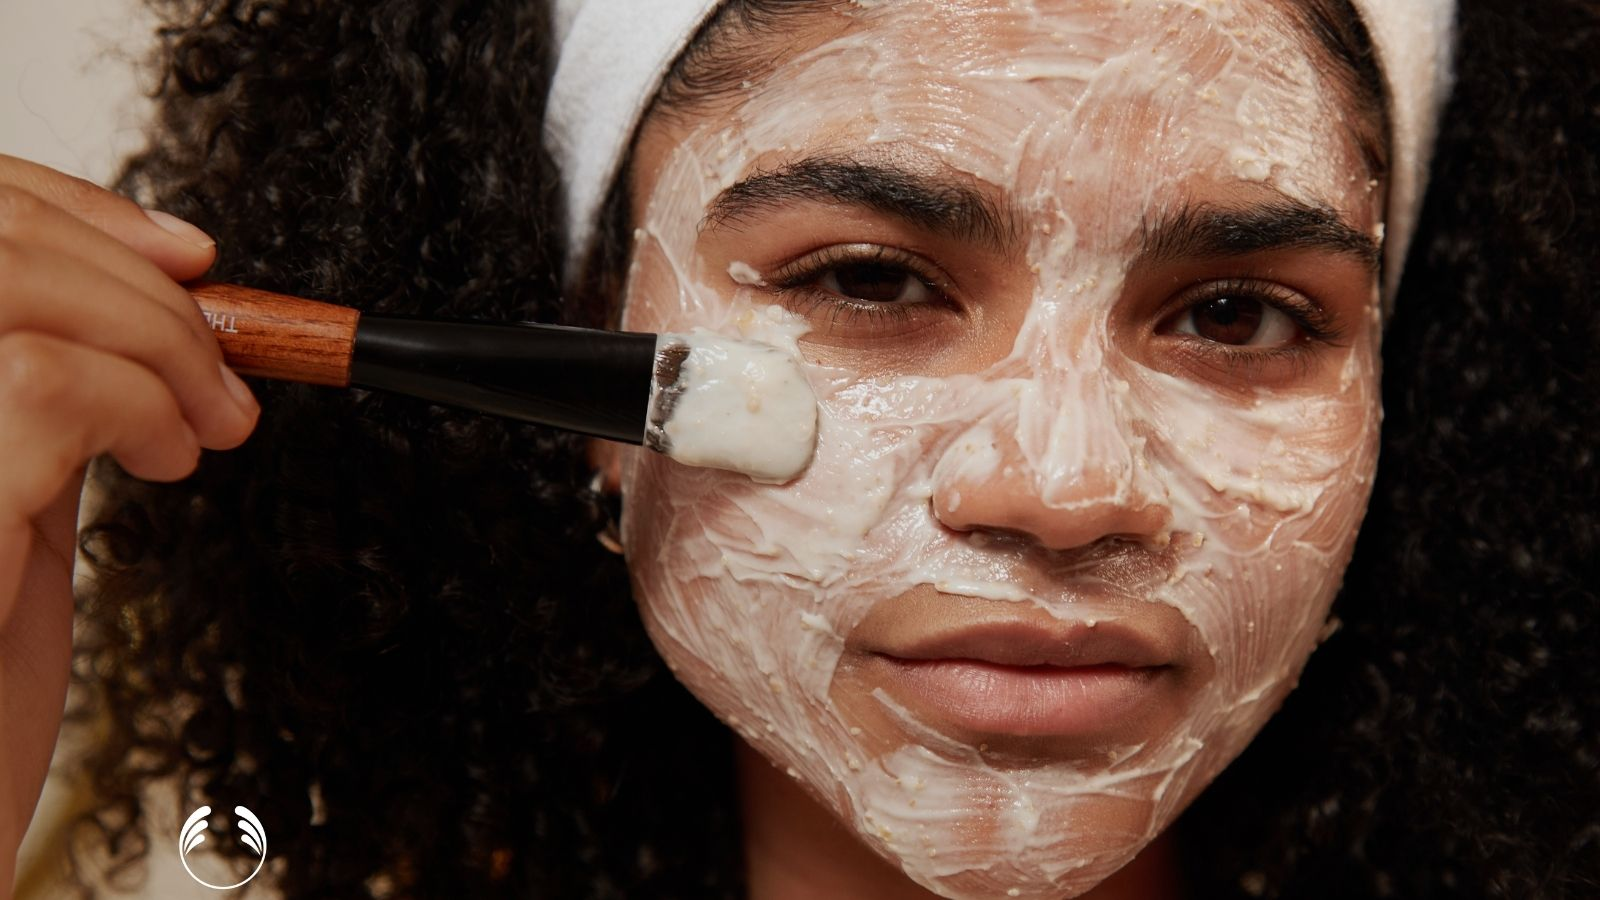 A lady puts on a face mask